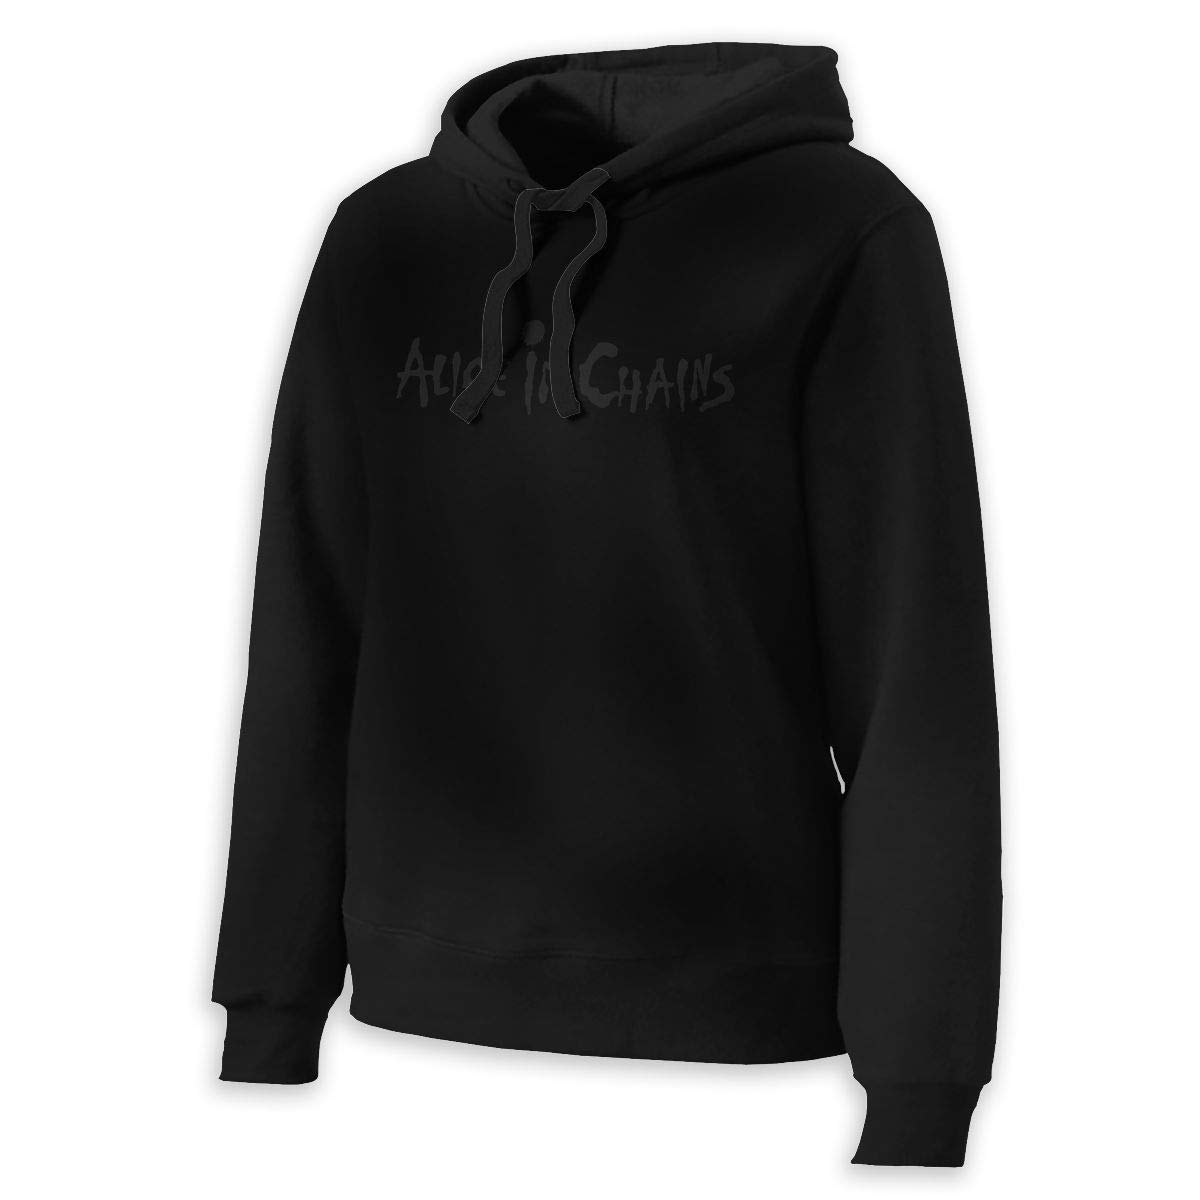 Alice in Chains Women's Long Sleeve Hooded Sweatshirts Pullover Hoodies Black